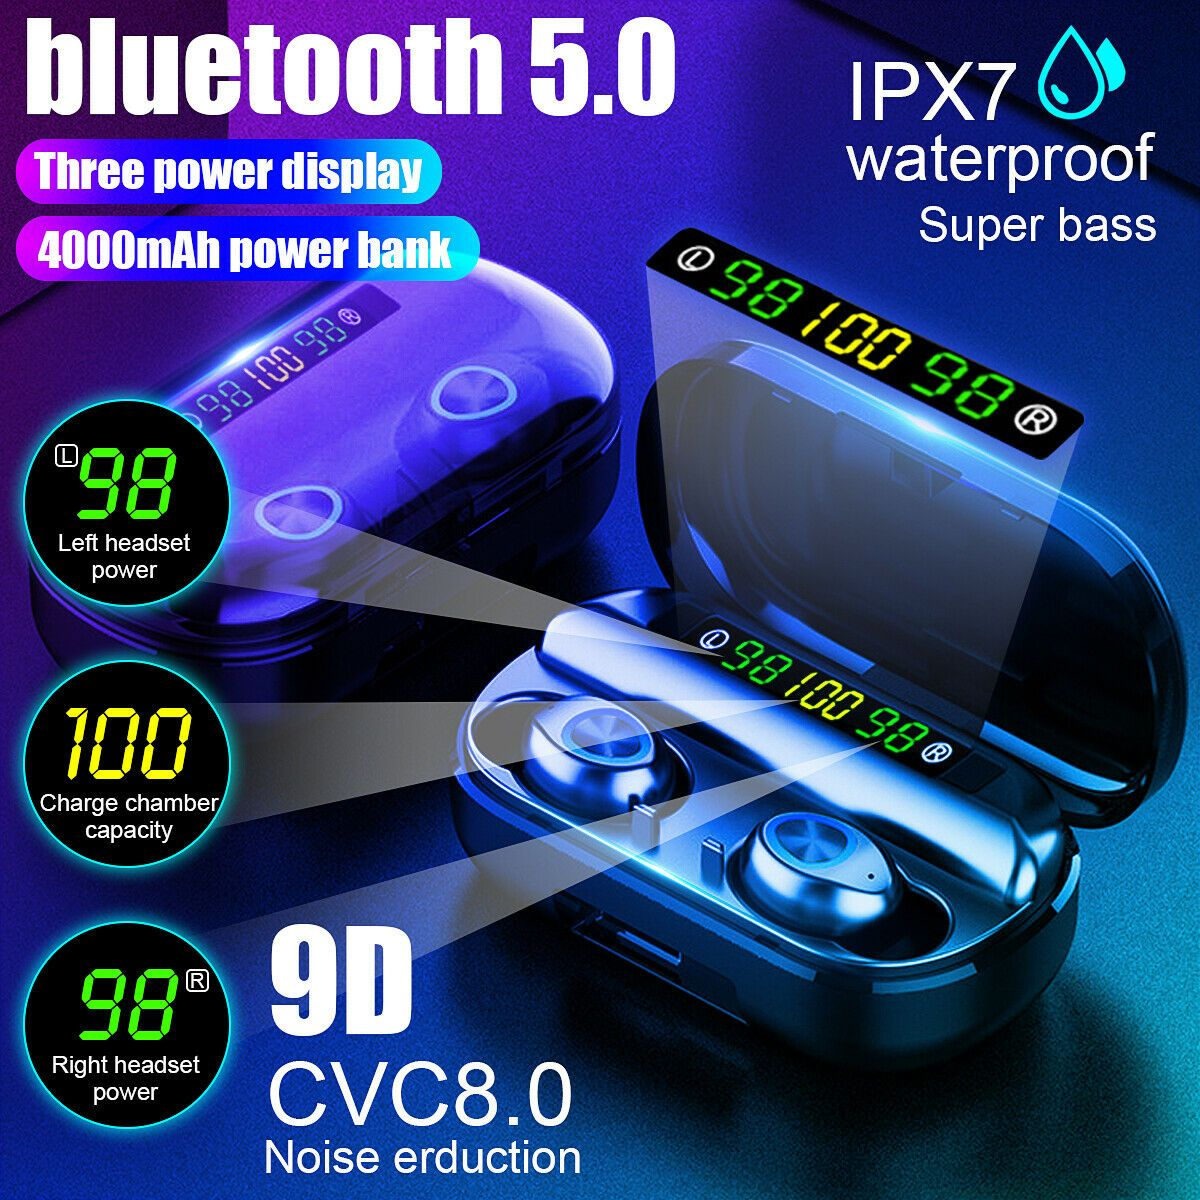 V5 0 Bluetooth Stereo Earphone Wireless Ipx7 Waterproof In 2020 Wireless Earphones Bluetooth Earbuds Wireless Earbuds